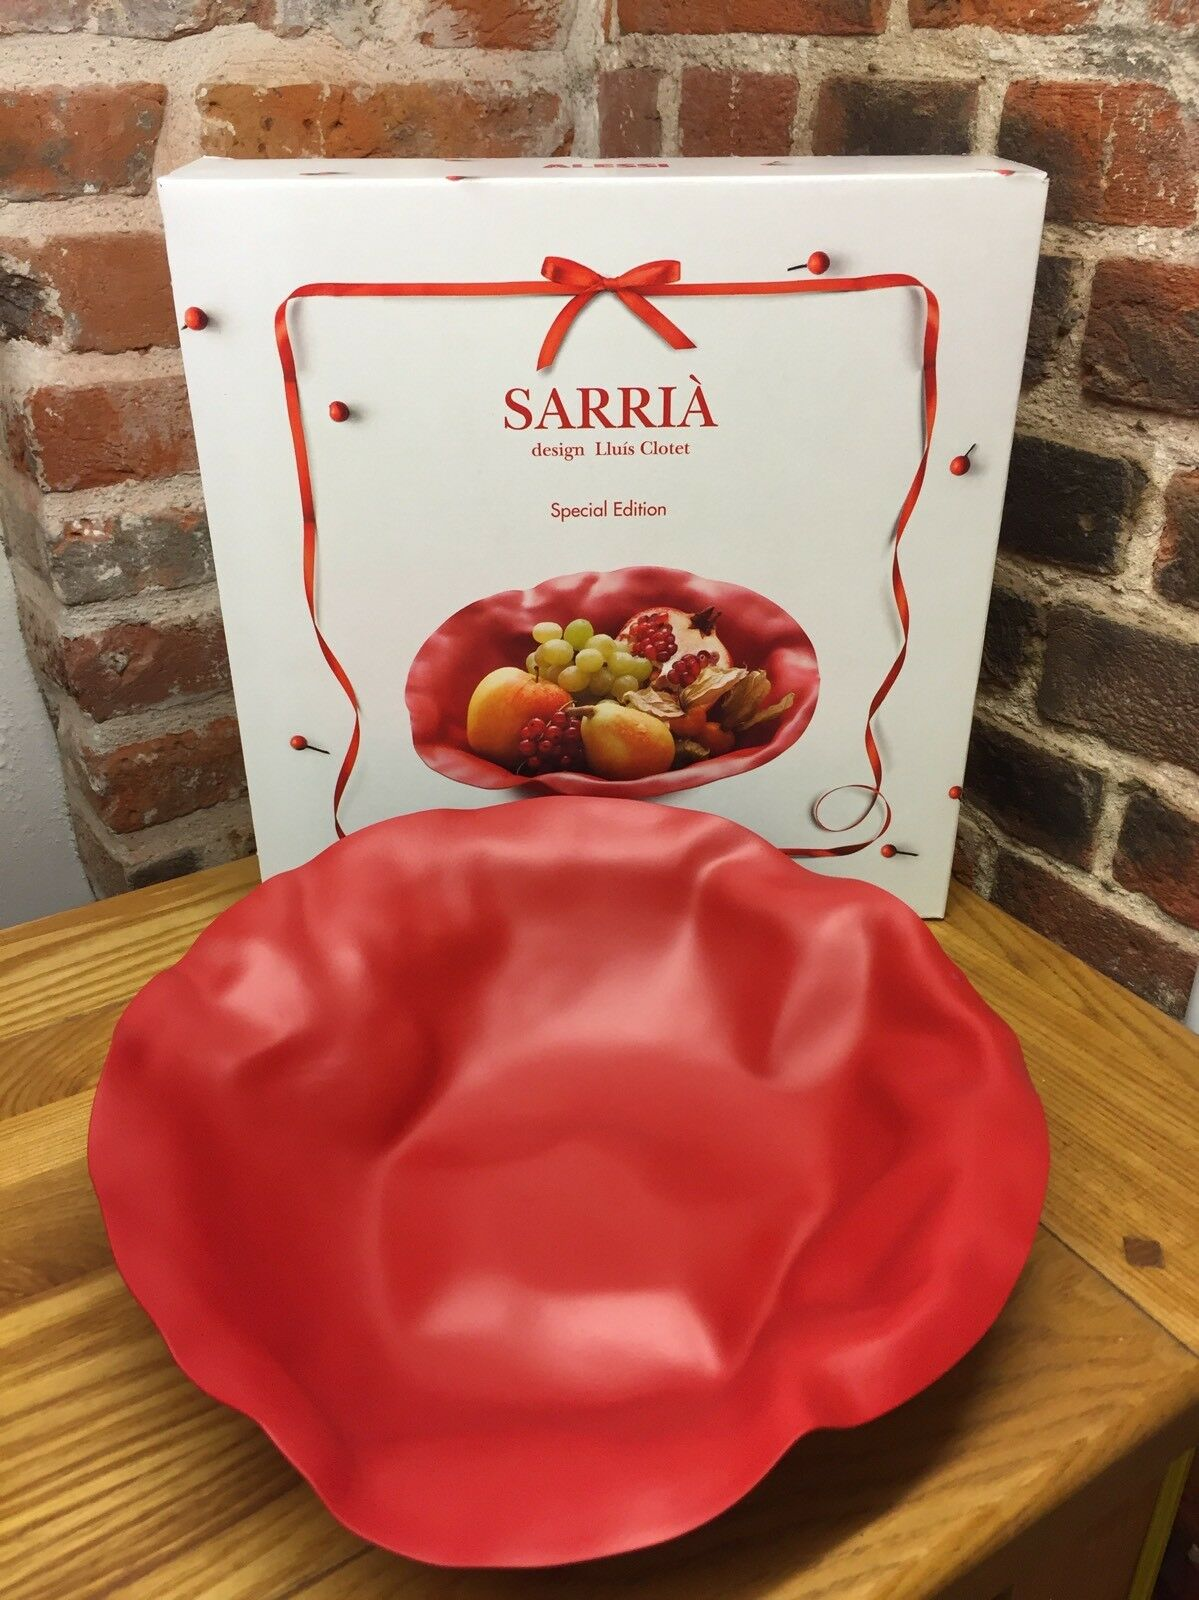 Alessi 90084 R Sarrià Fruit Bowl In Red Special Edition, Lluís Closet